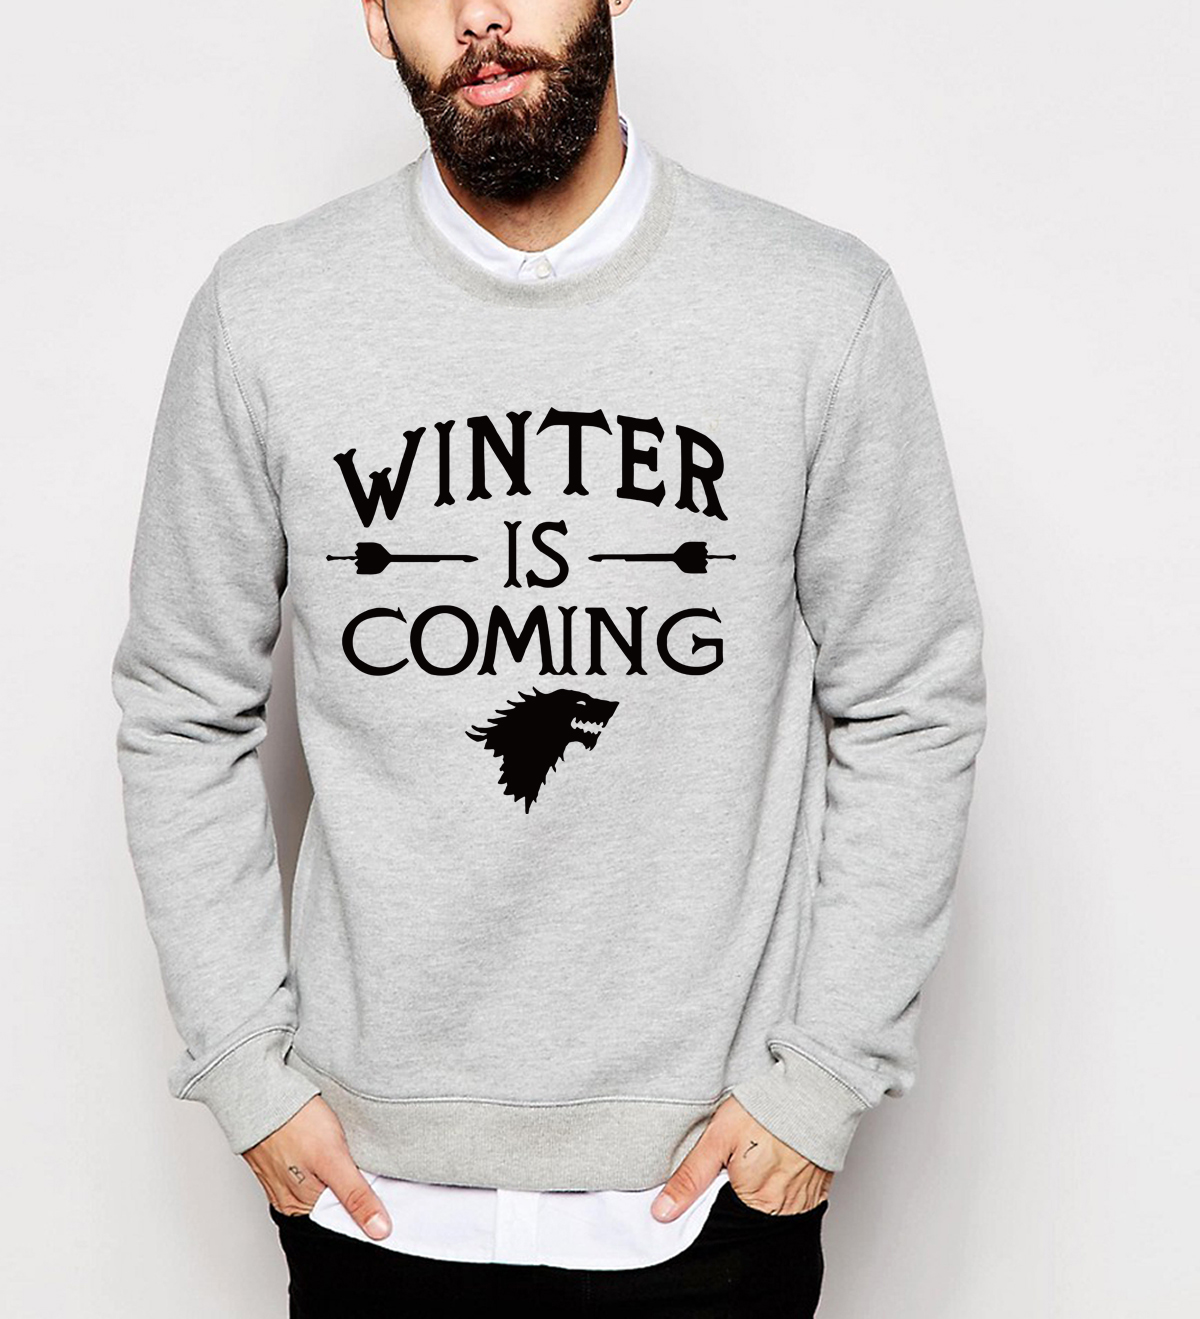 Game of Thrones  winter is coming 2019 new autumn winter harajuku men sweatshirt hoodies hip hop streetwear brand  funny